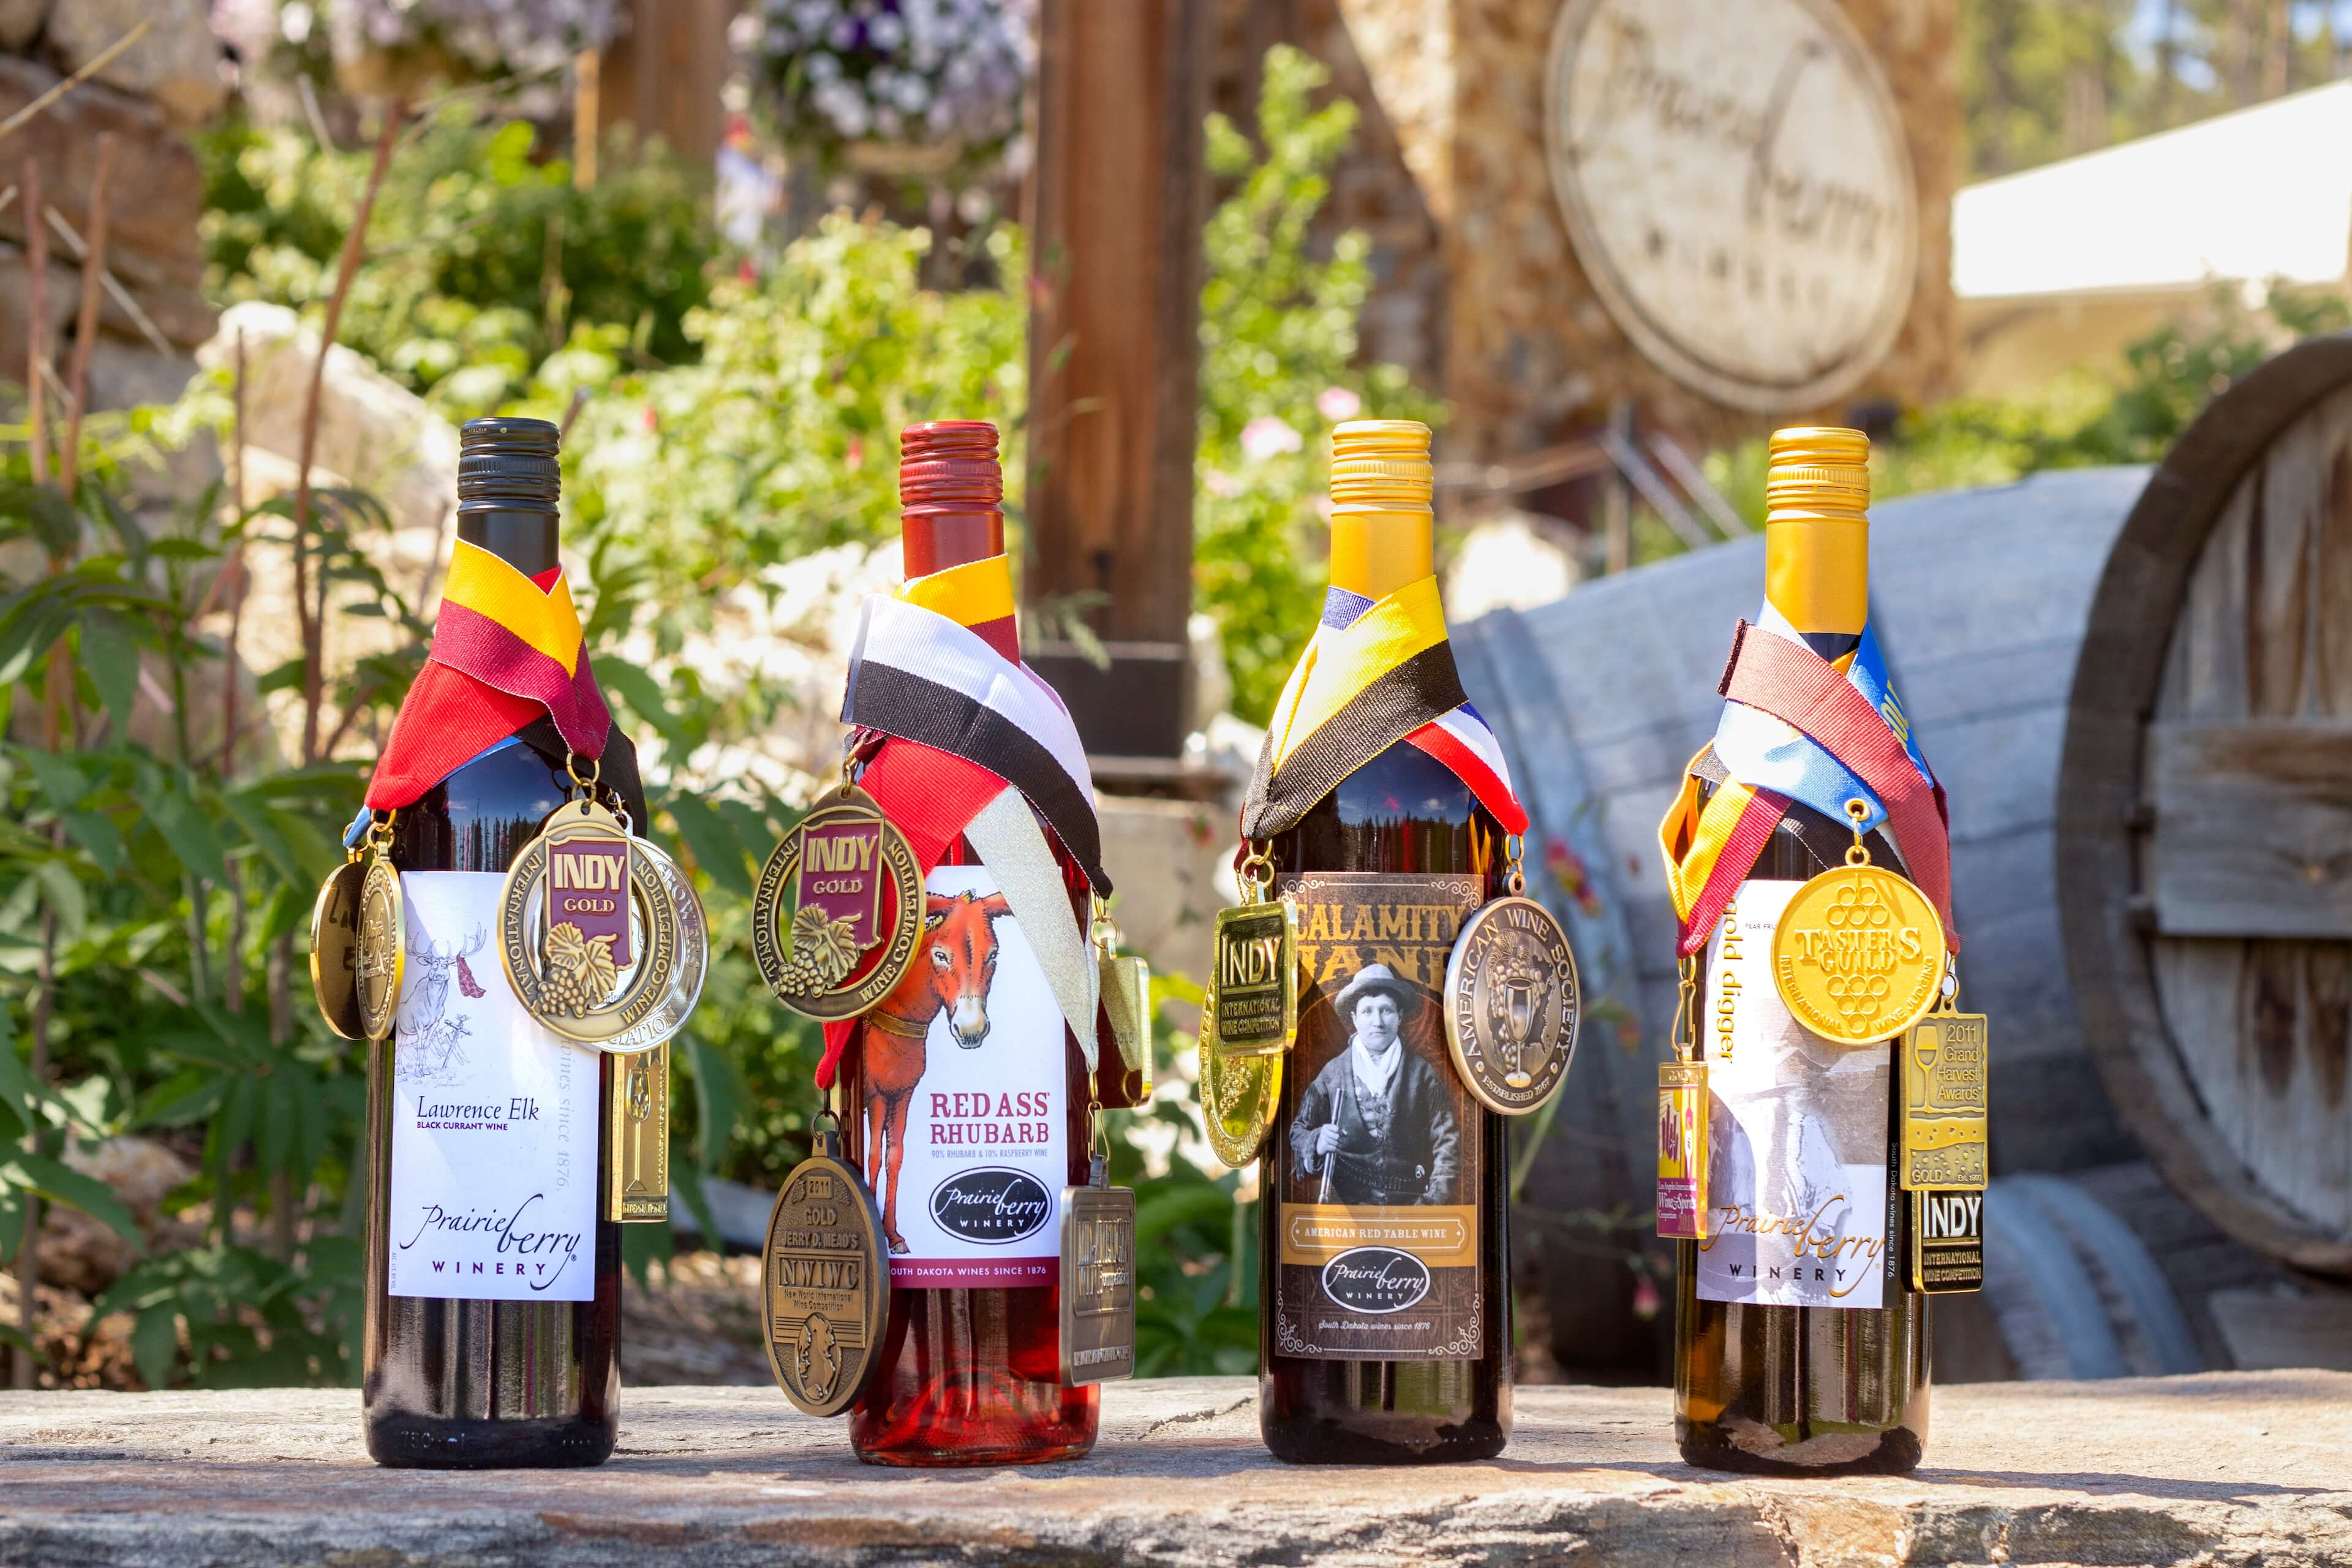 Prairie Berry Winery's most award-winning wines include Lawrence Elk, Red Ass Rhubarb, Calamity Jane, and Gold Digger. In total, the South Dakota winery has claimed more than 1,000 international wine awards since 2001.